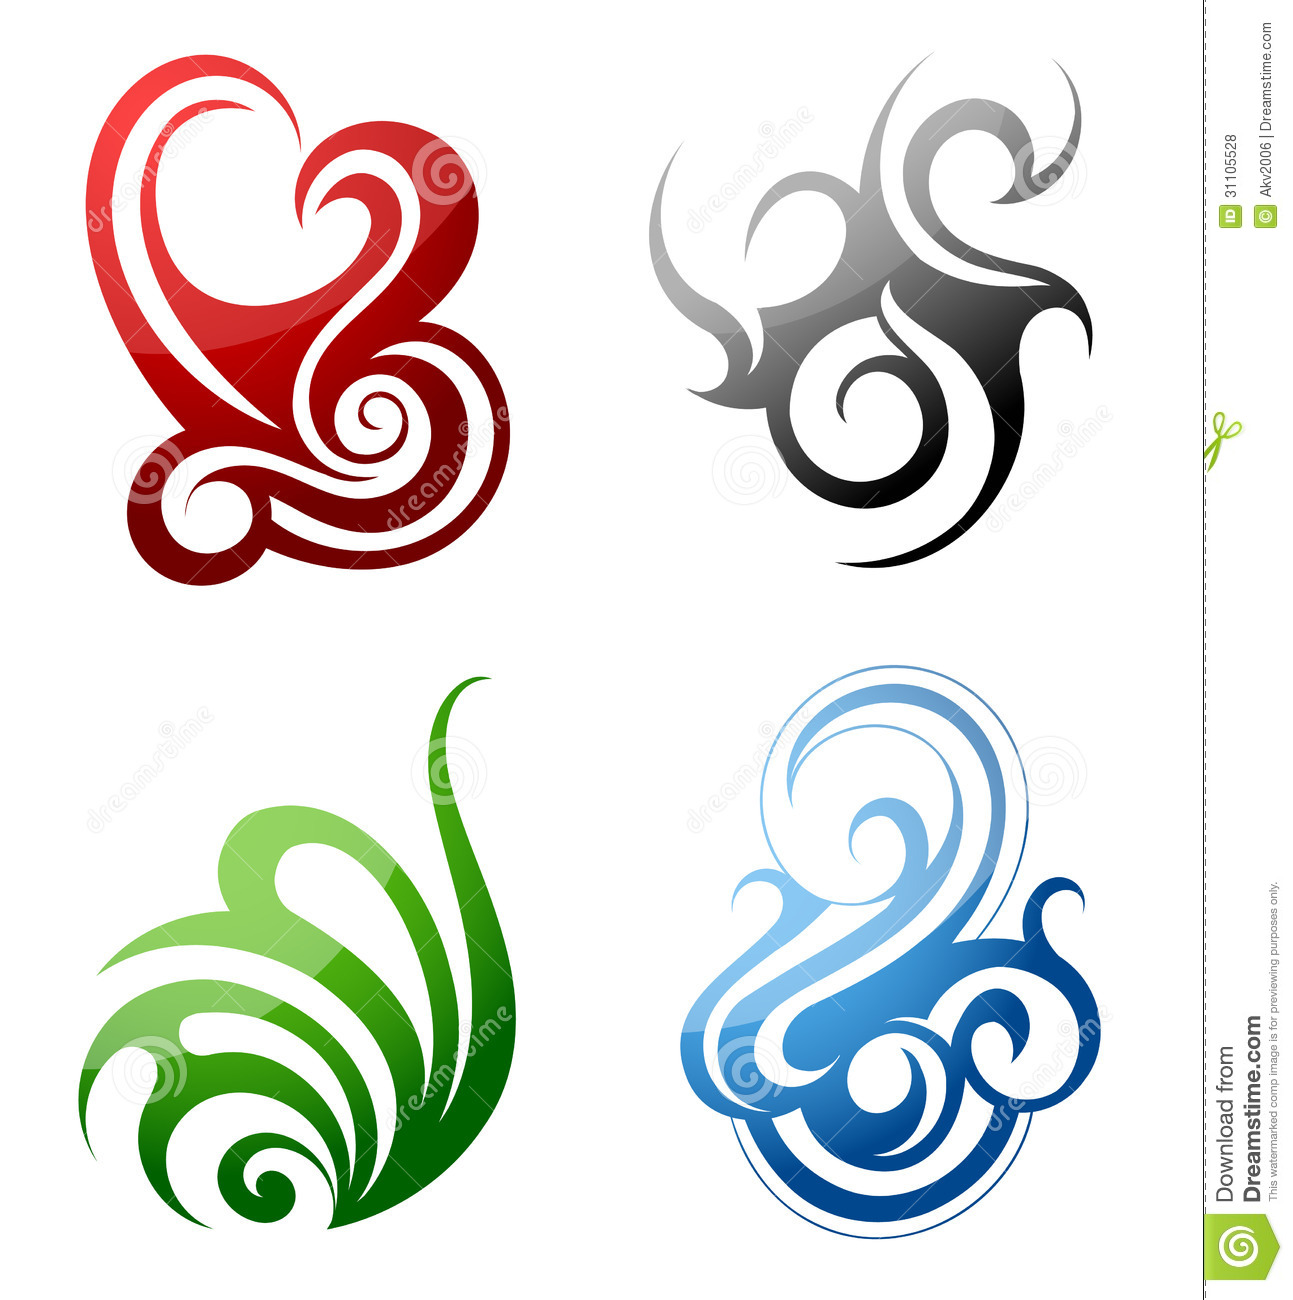 Elements clipart wind Earth fire designs and designs